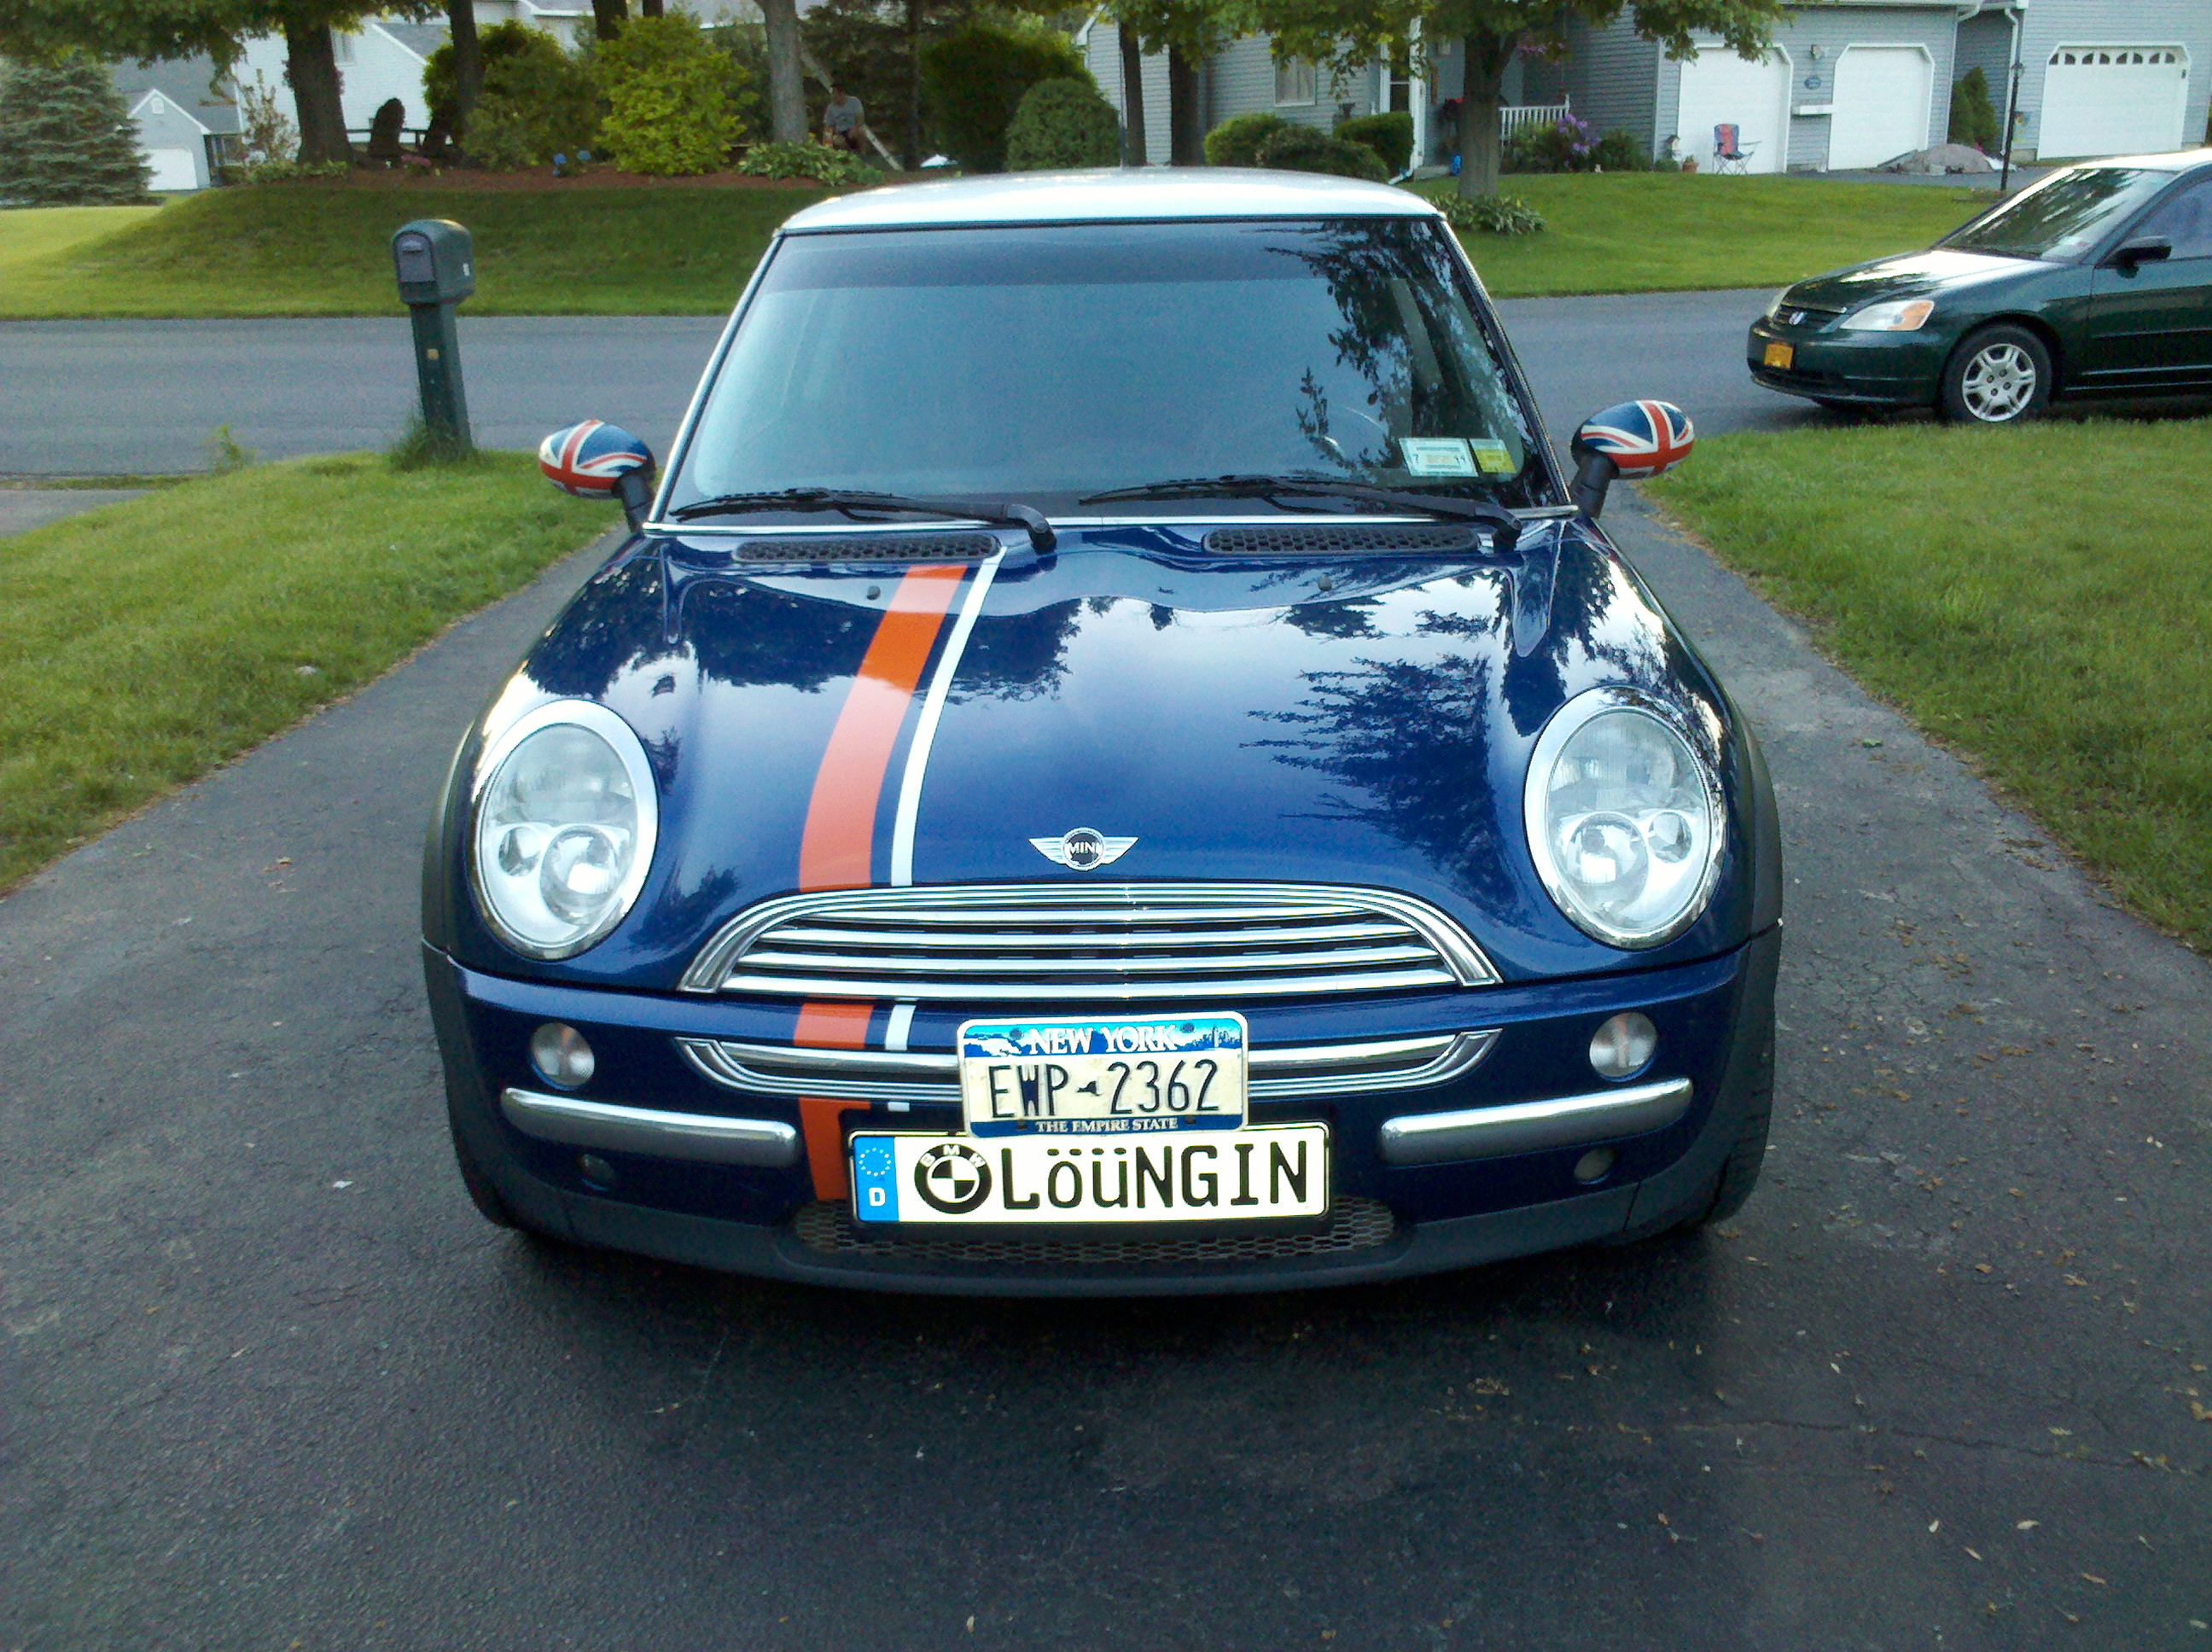 Car custom decals and graphics - Mini Cooper Thin 2 Color Offset Stripe Graphic Decals